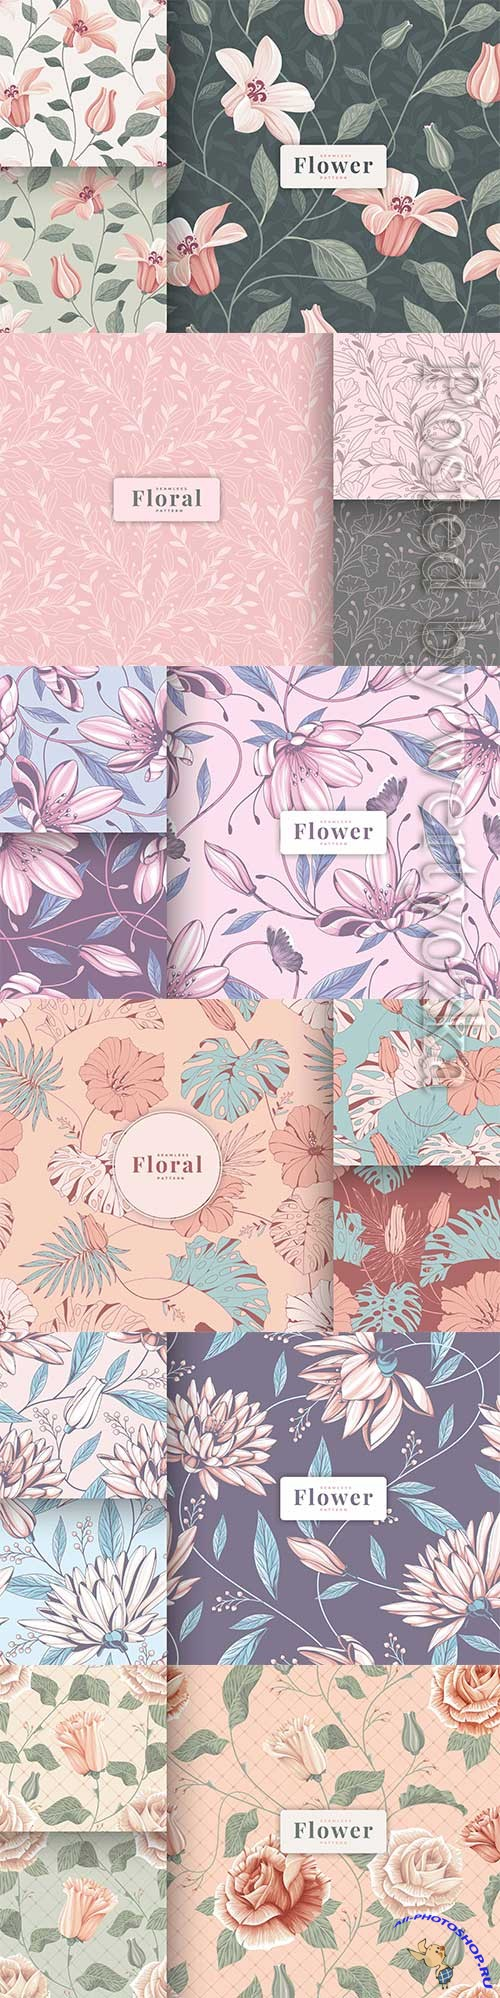 Colour hand drawn vintage floral seamless pattern